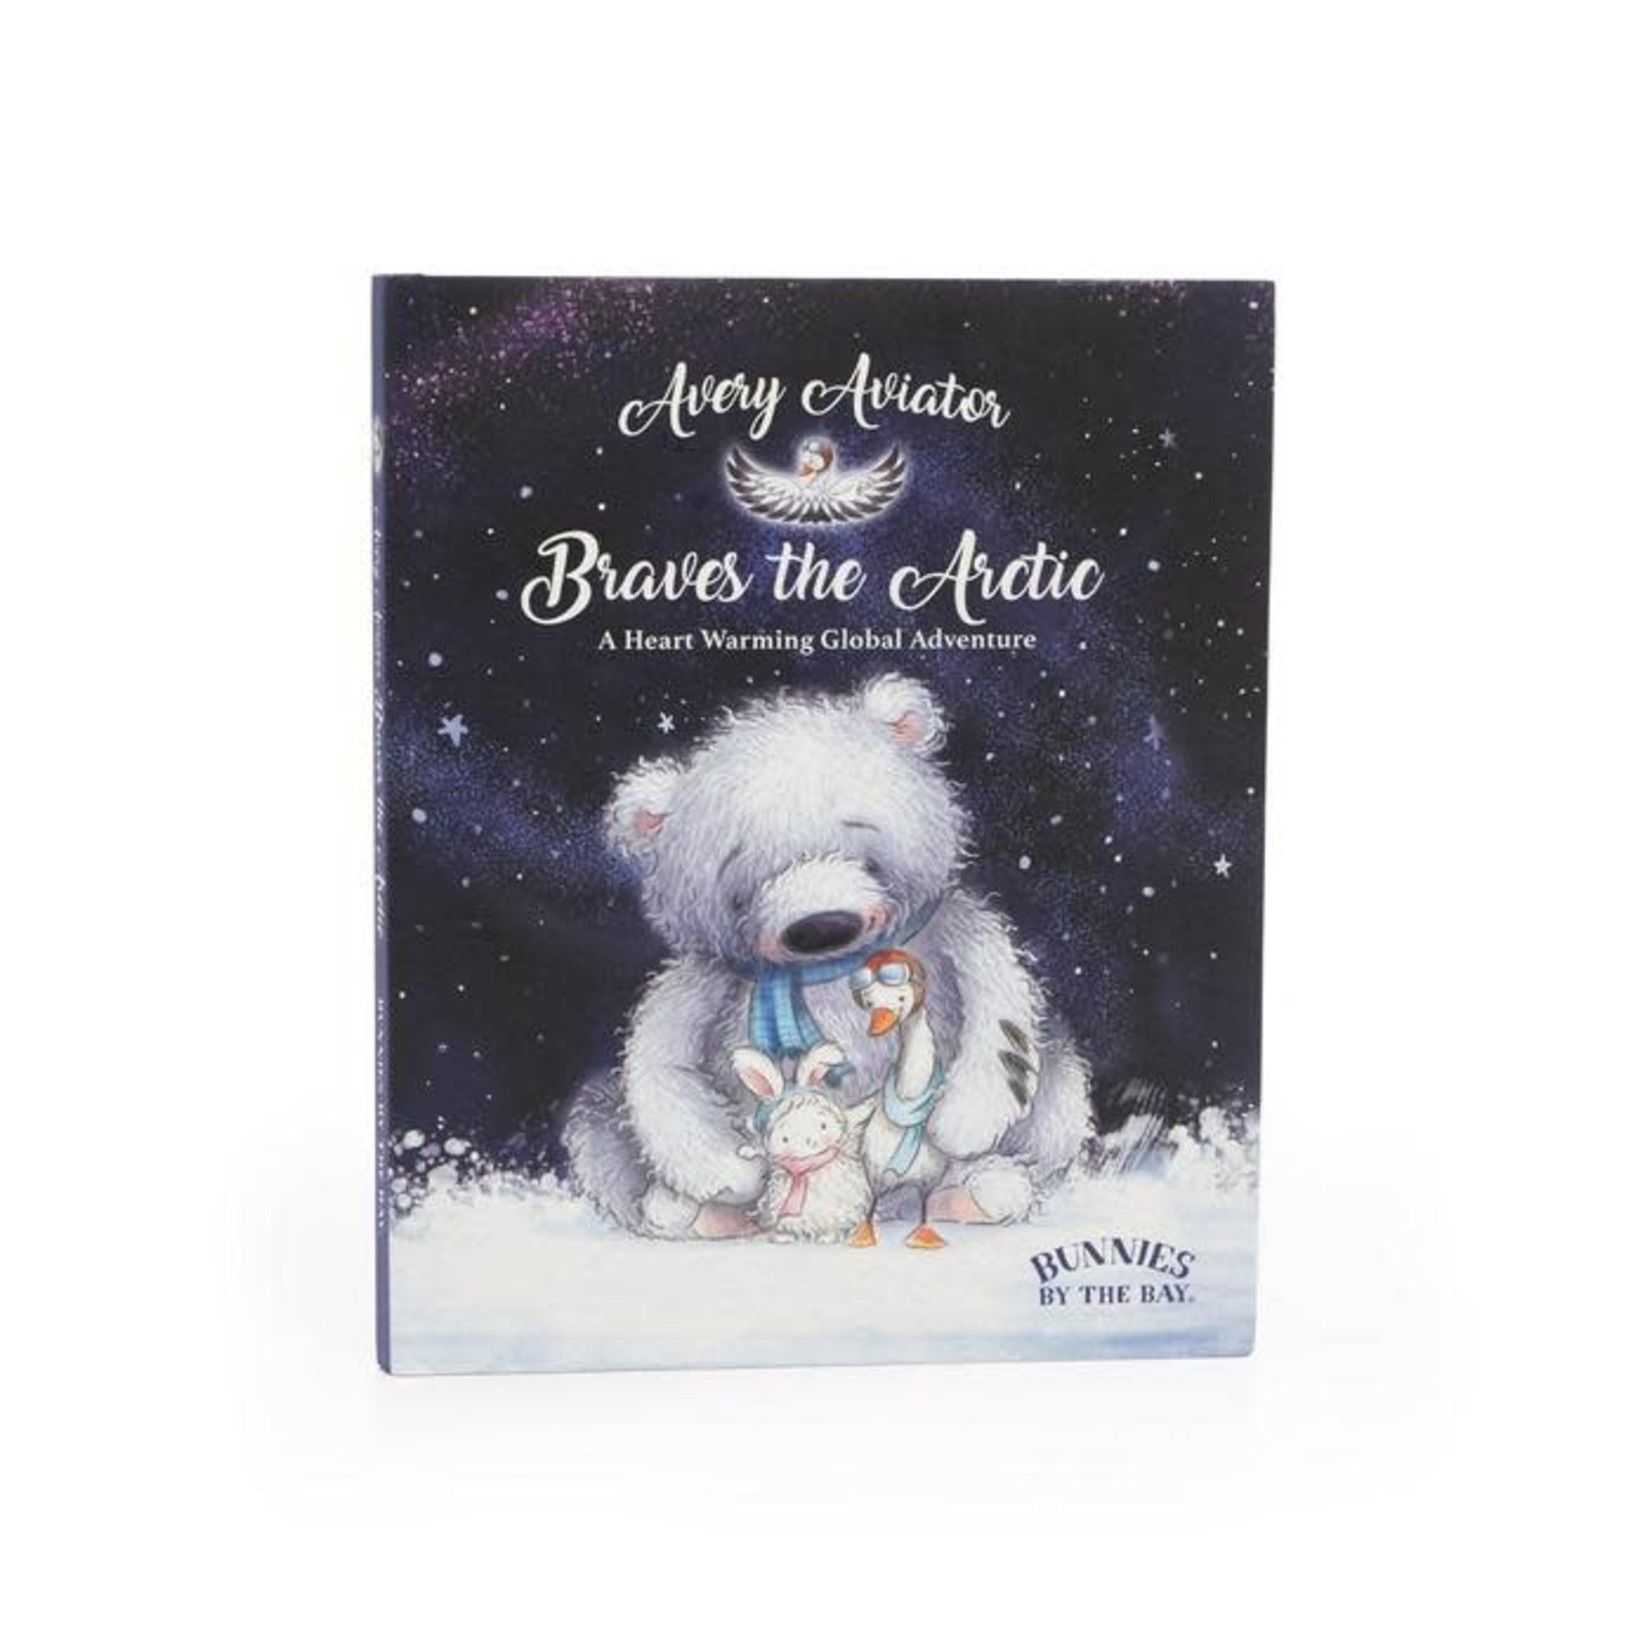 Bunnies By  Bay Avery the Aviator Braves the Arctic Book